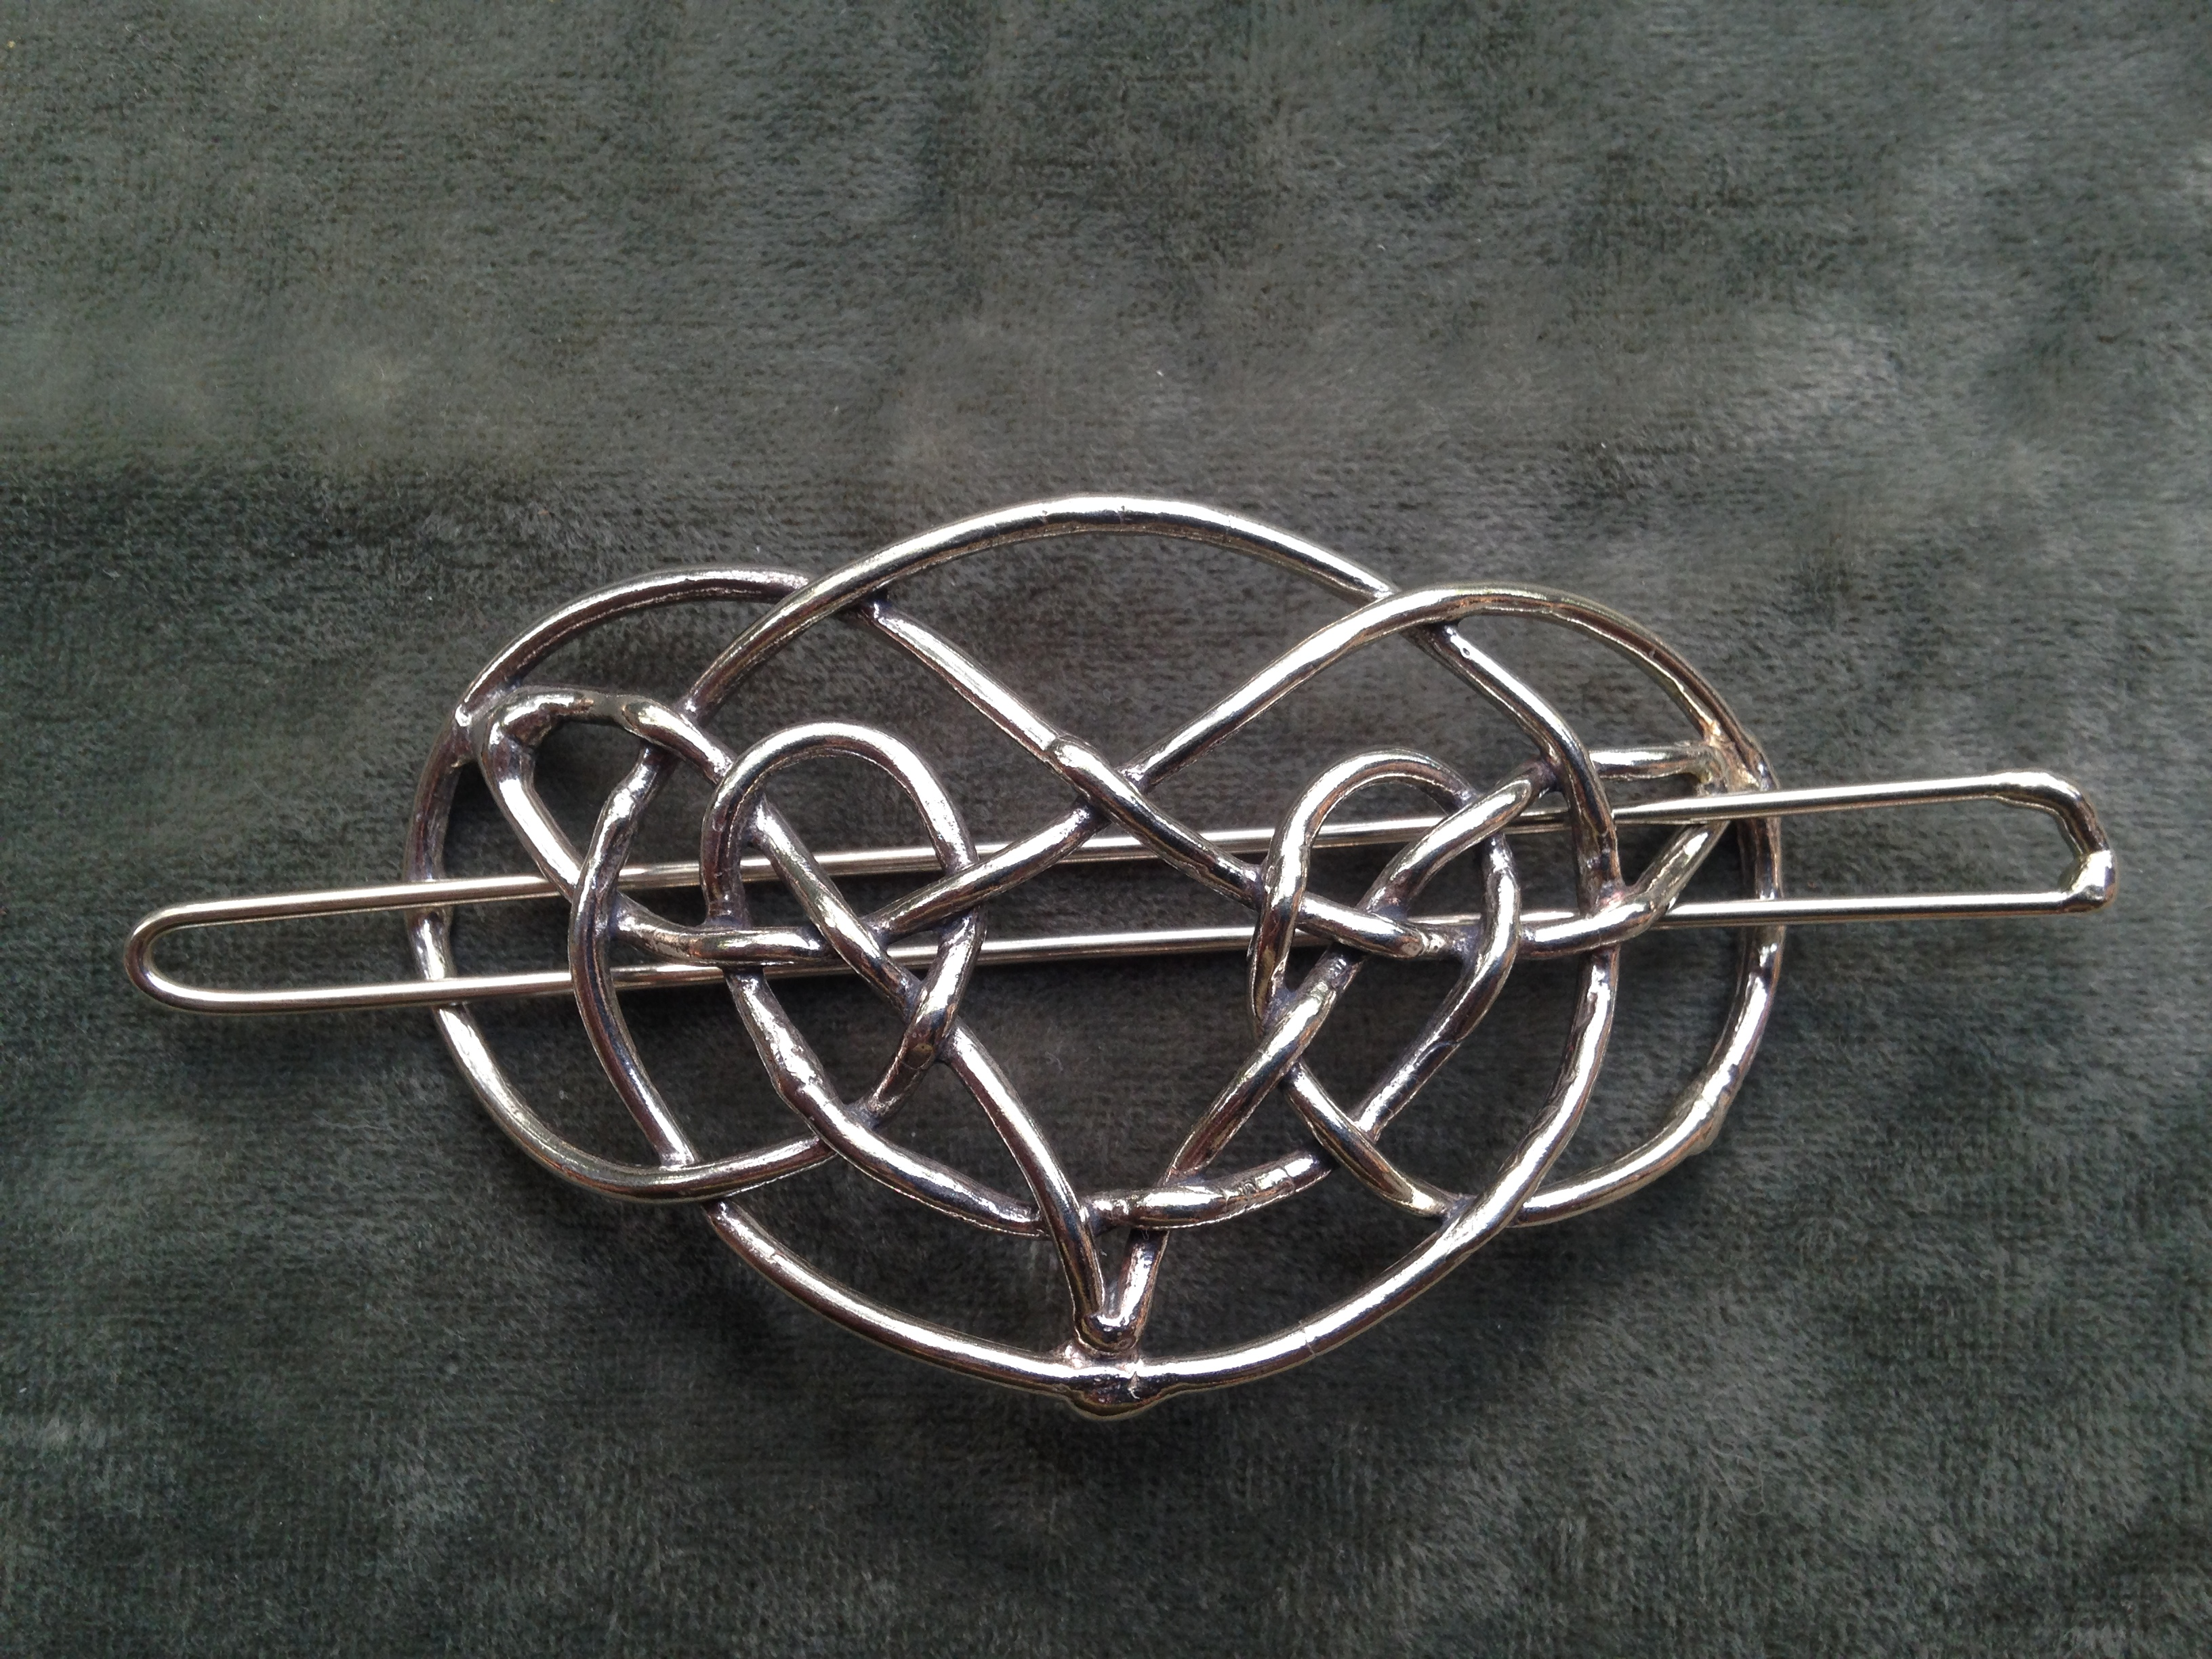 Celtic Knot Barrette